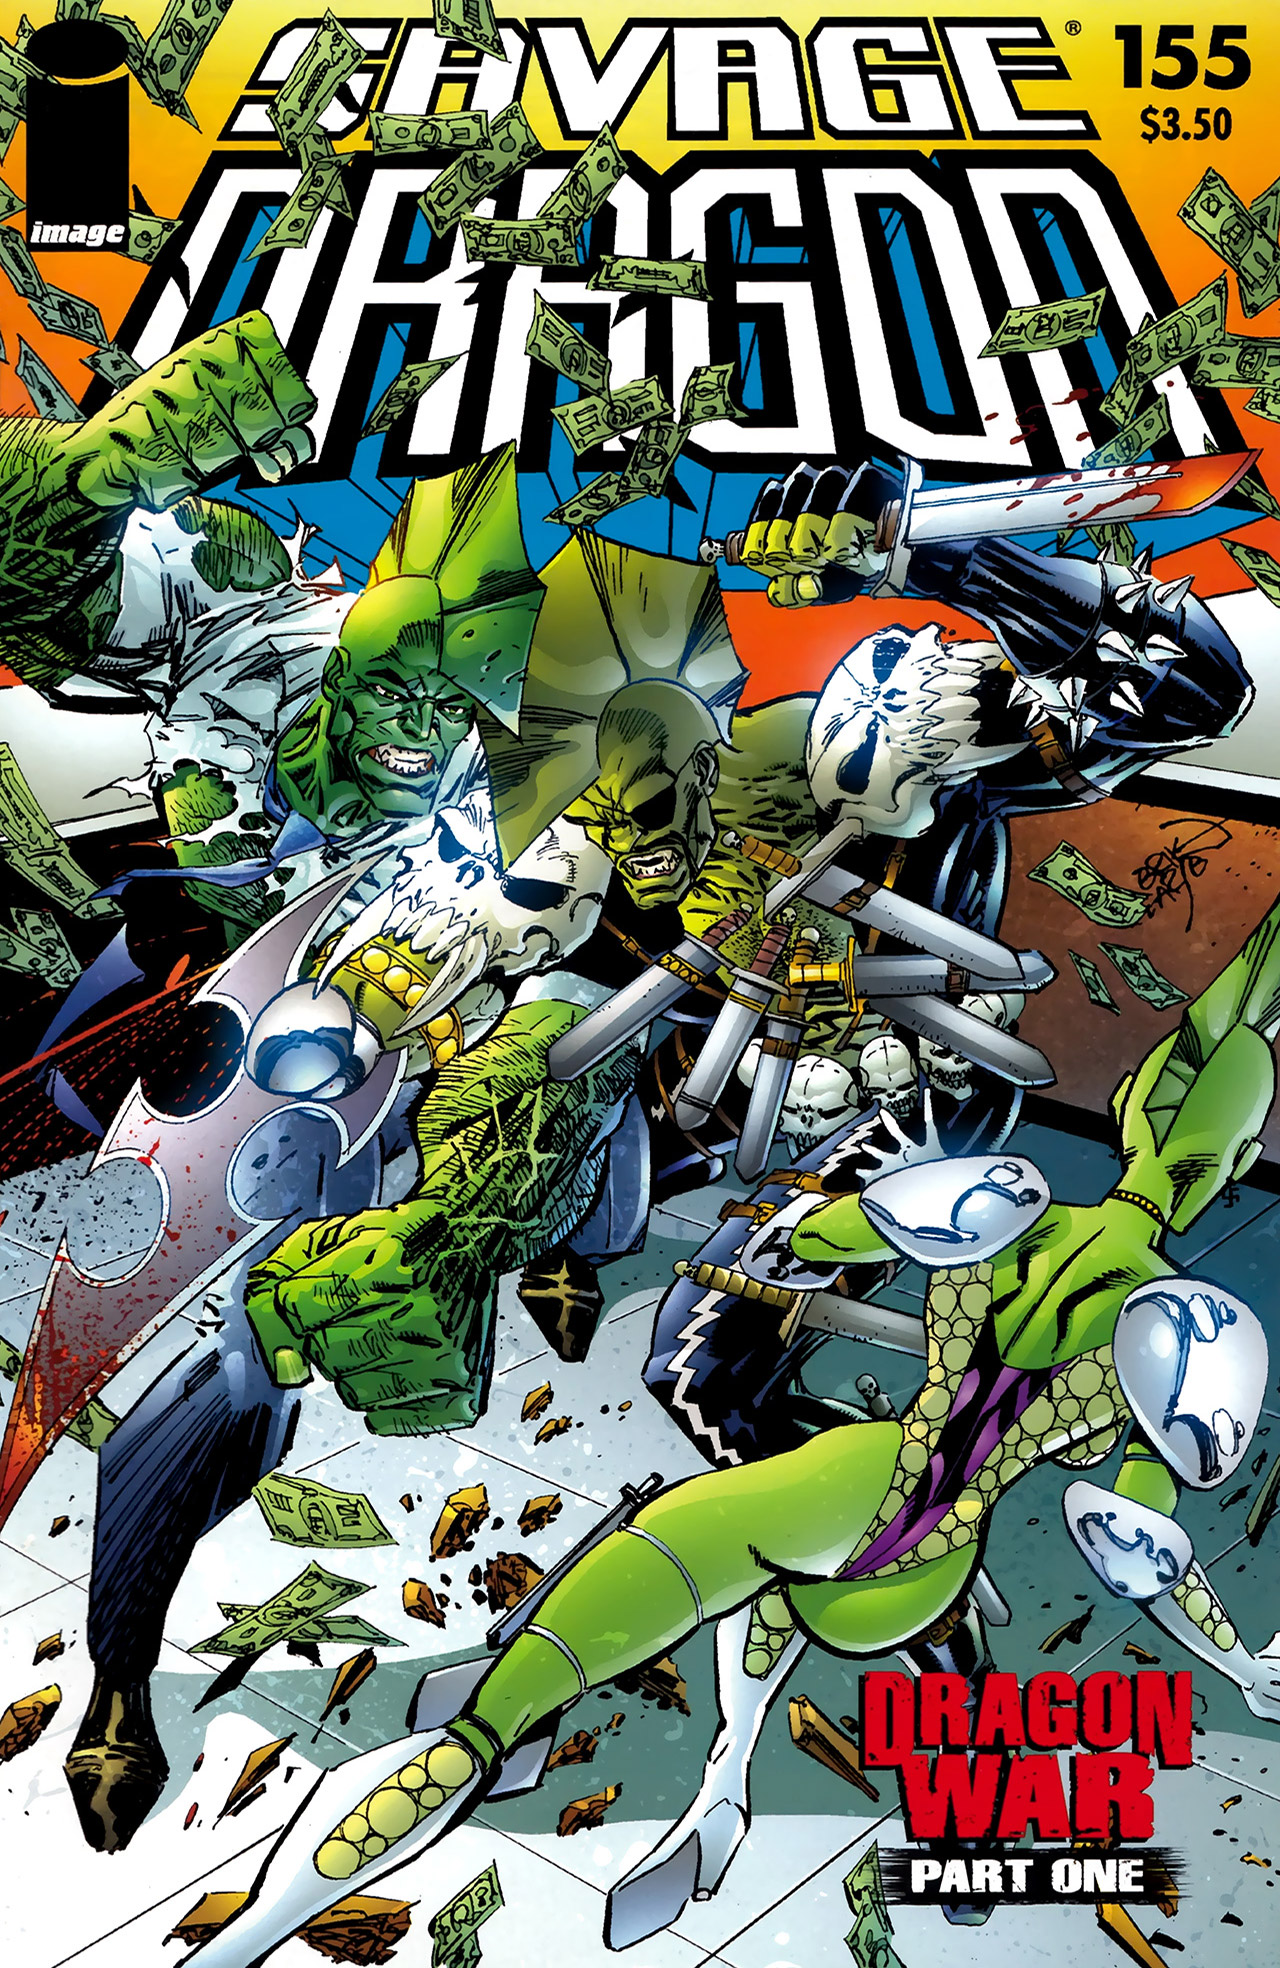 Cover Savage Dragon Vol.2 #155